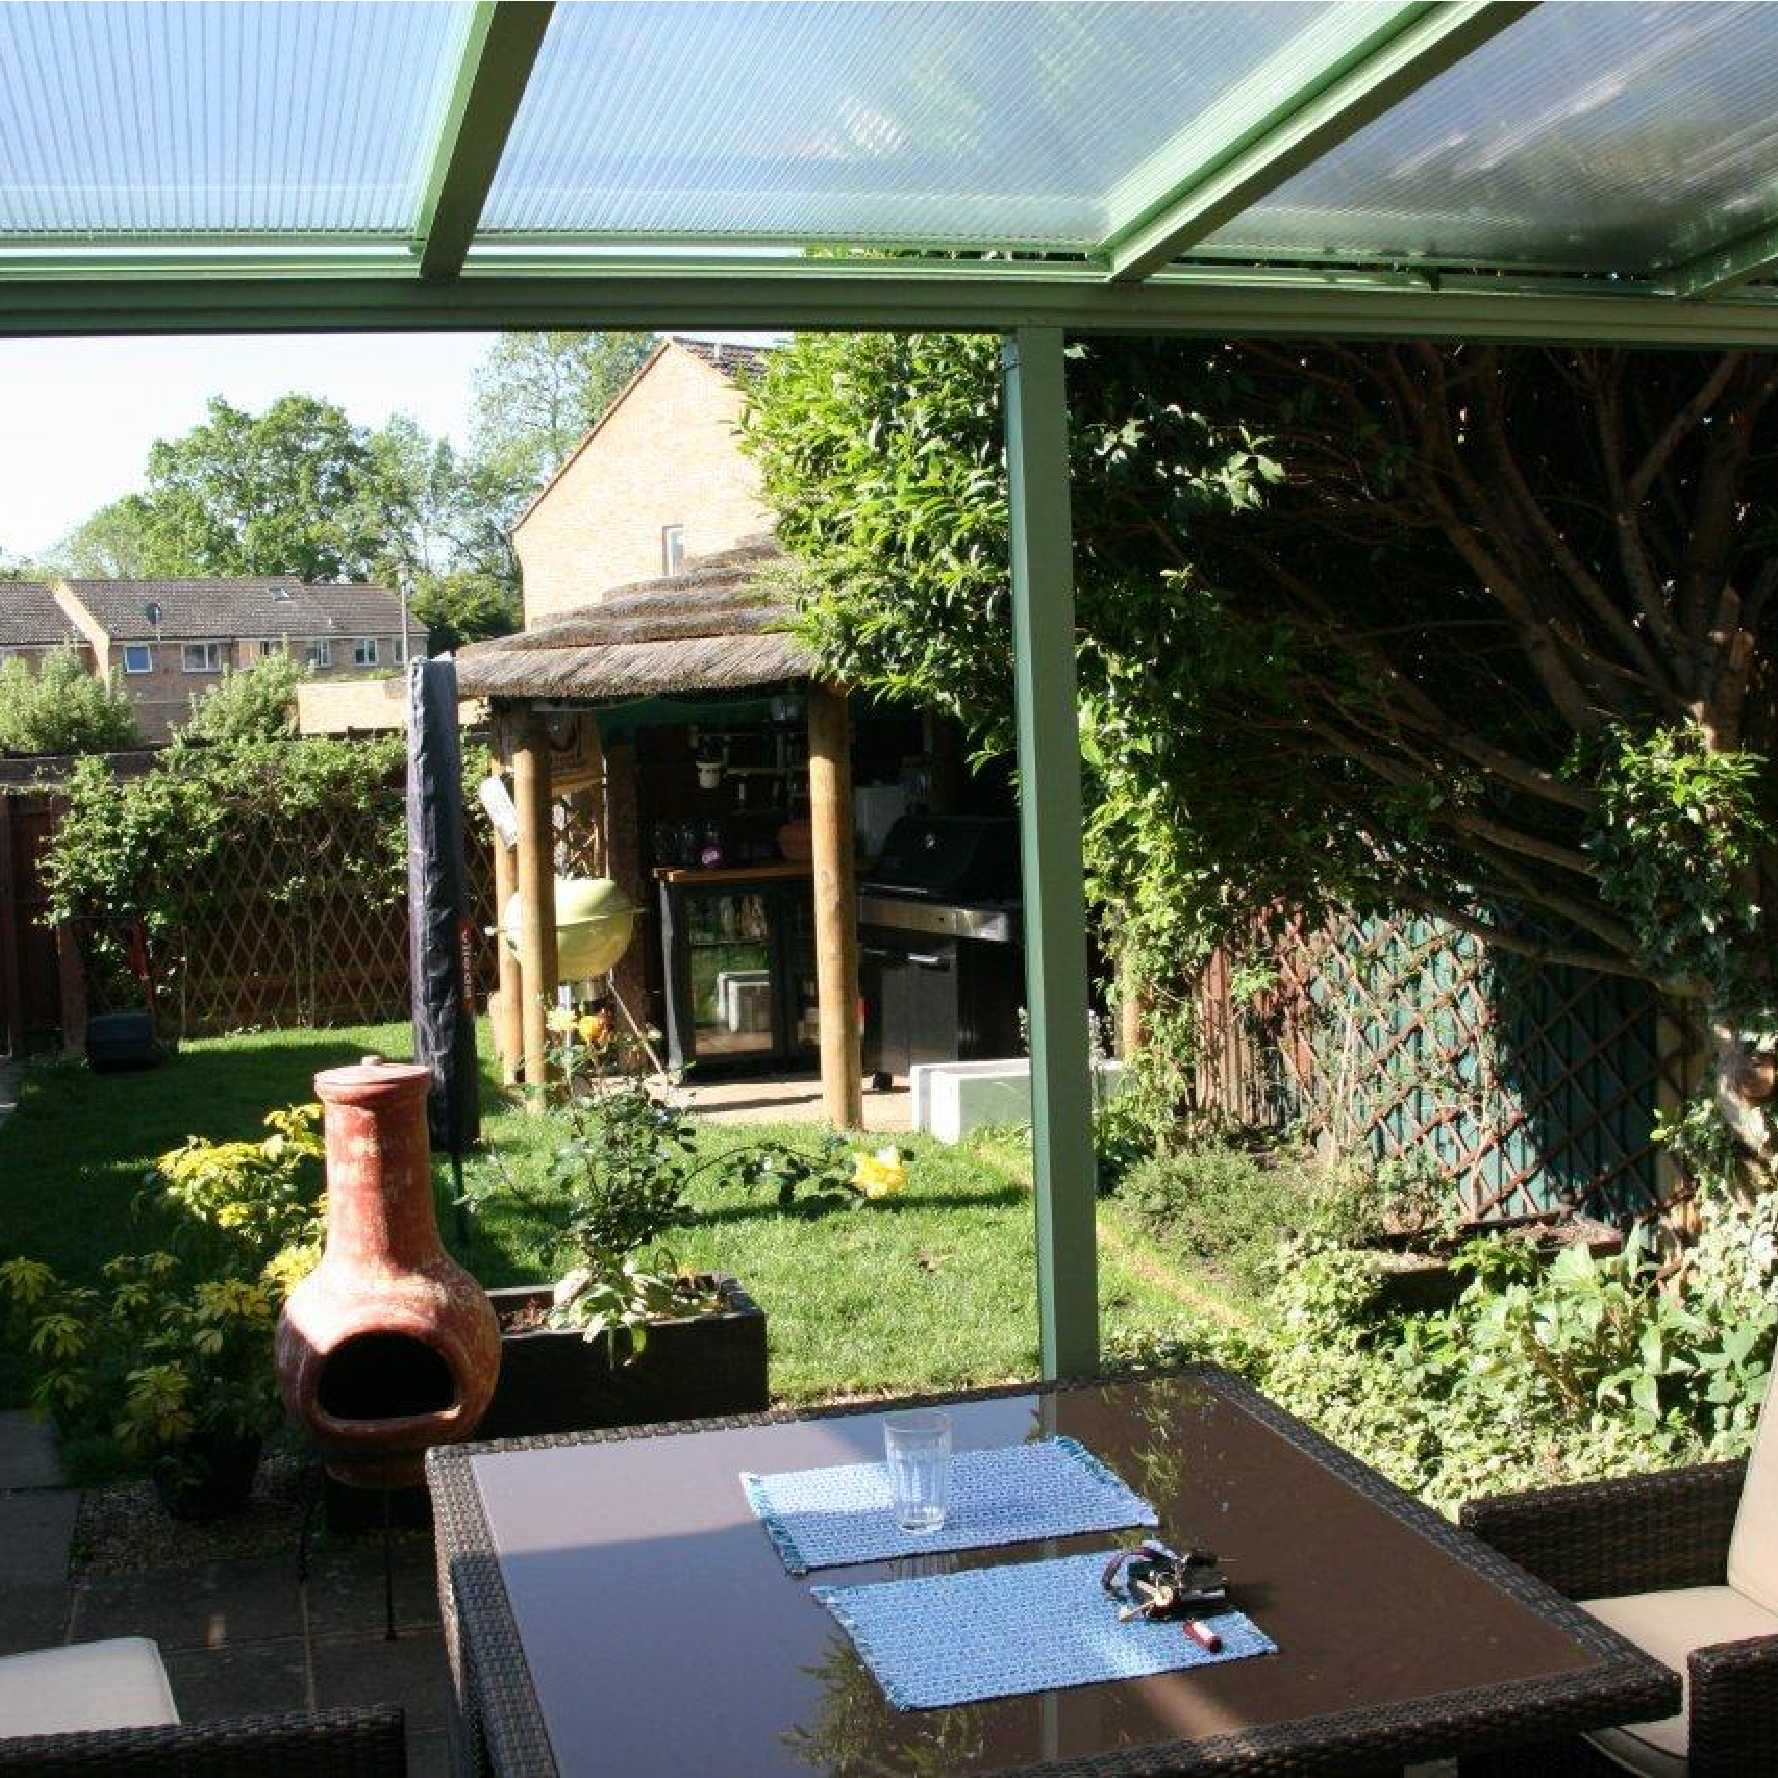 Affordable Omega Smart Lean-To Canopy with 16mm Polycarbonate Glazing - 8.4m (W) x 3.5m (P), (4) Supporting Posts